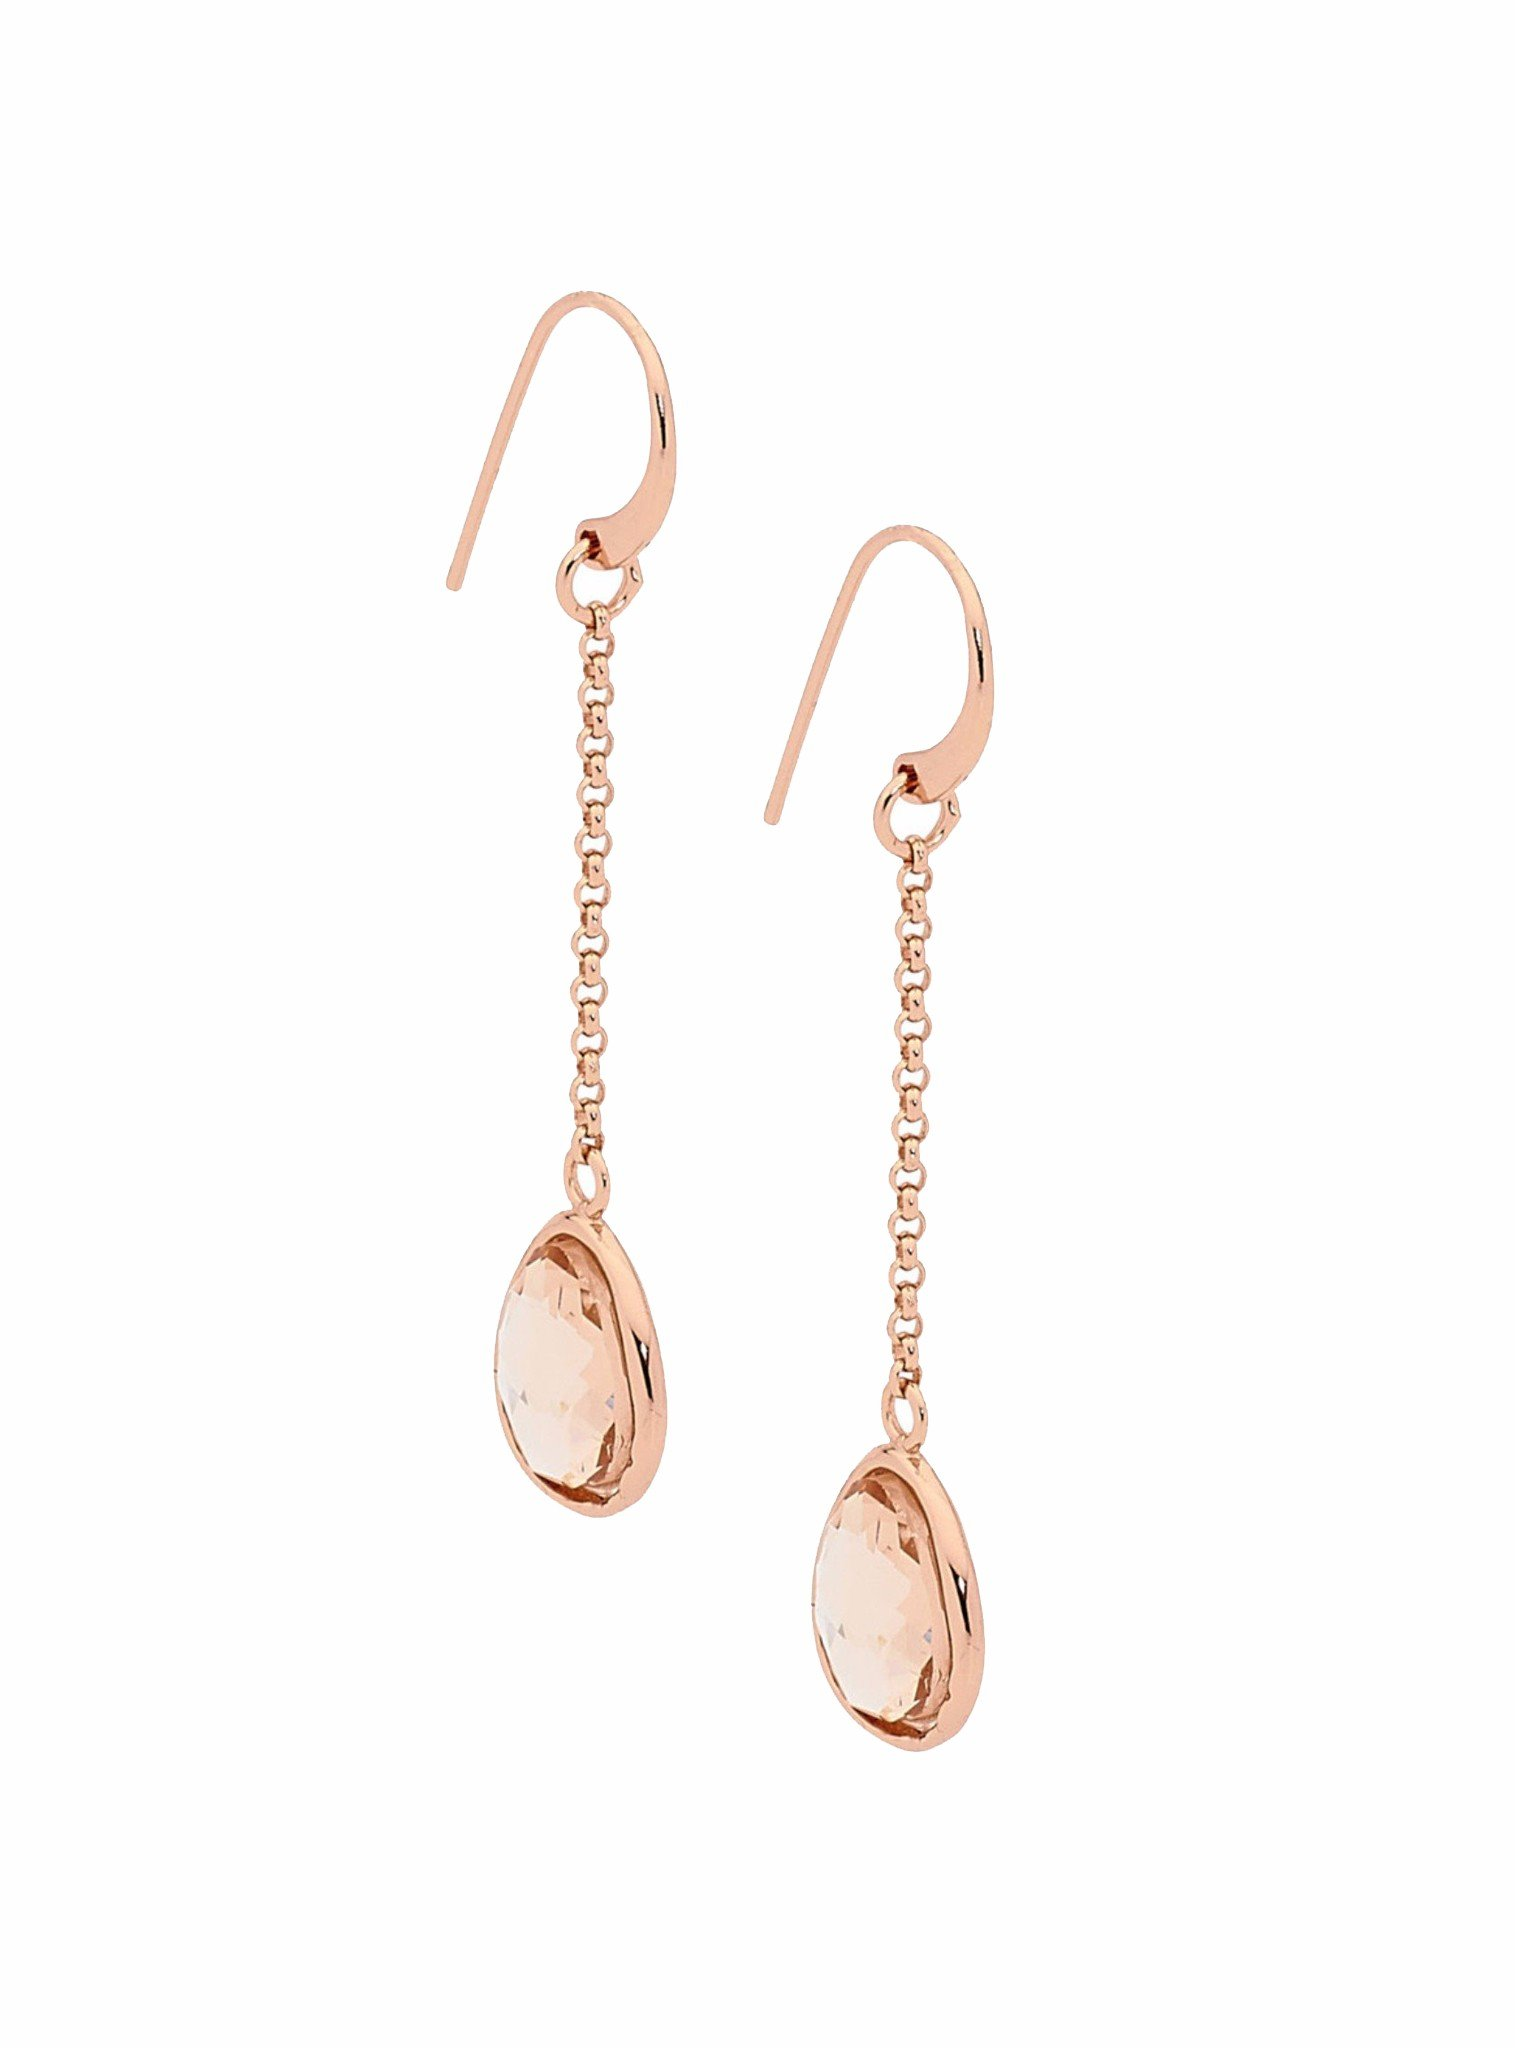 Water 14k Rose Gold Silver Earrings with Champagne Crystal